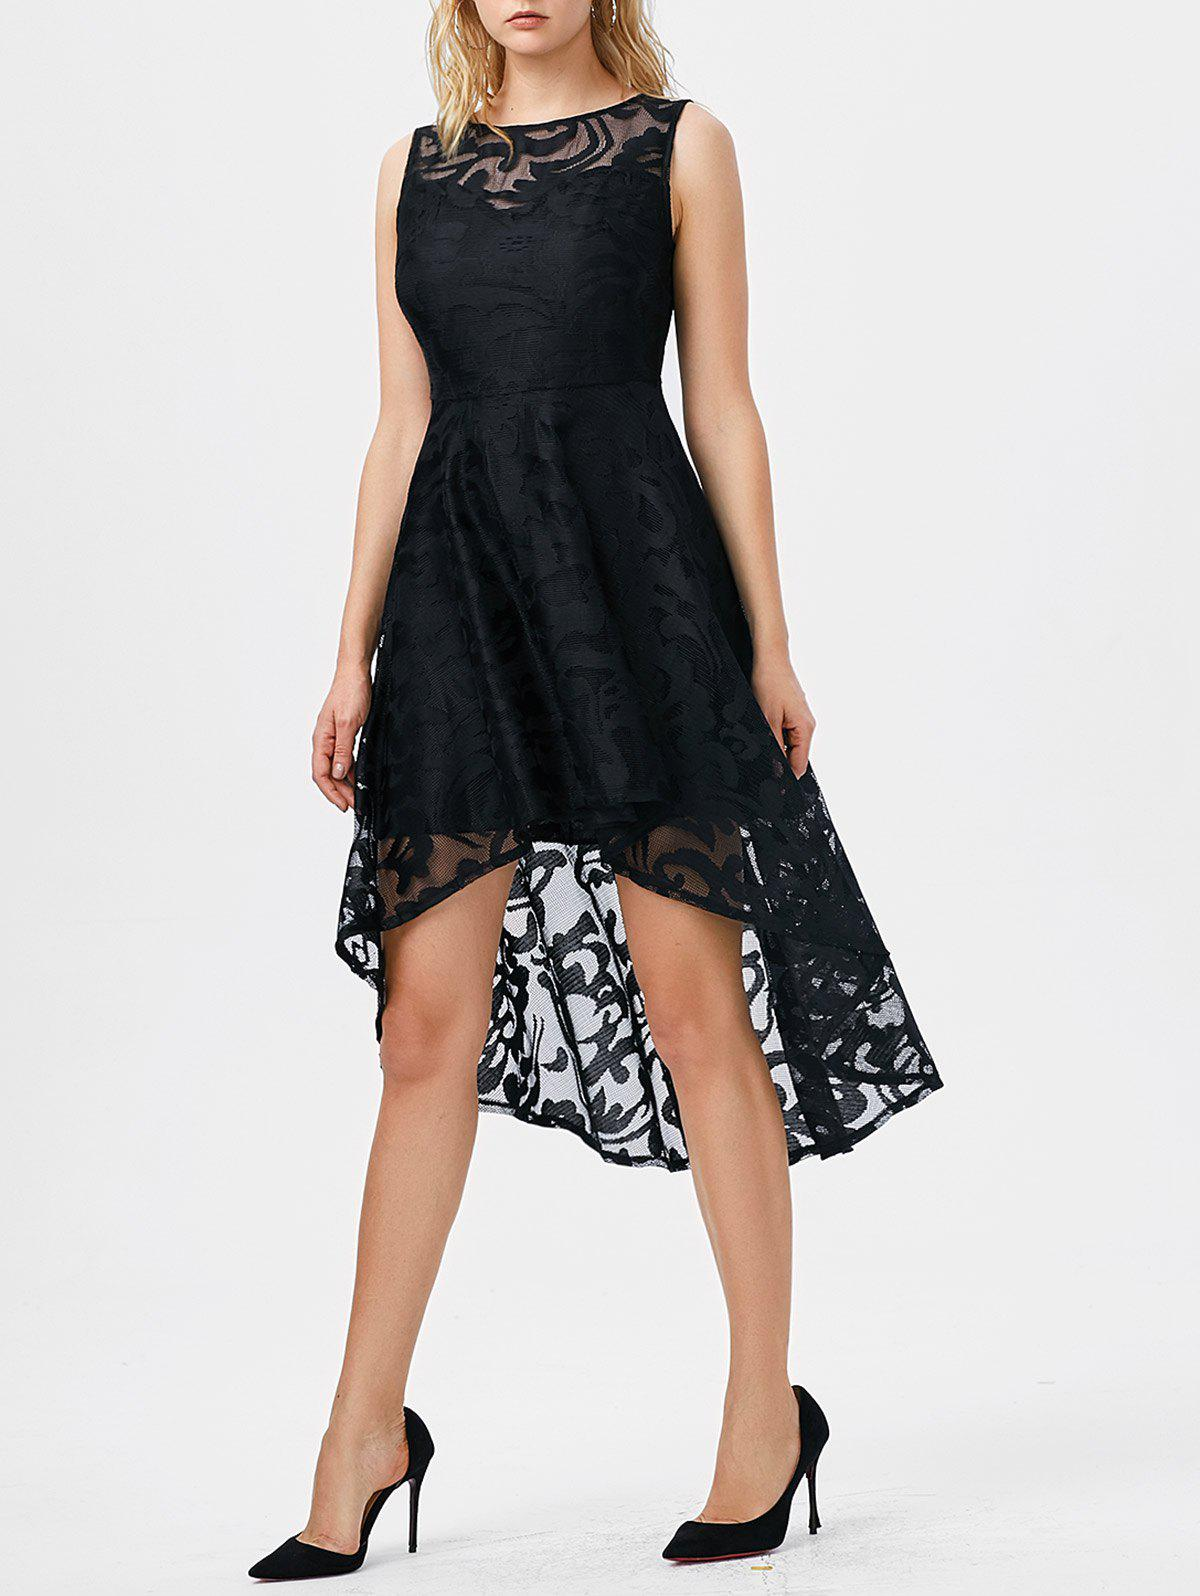 Discount Lace High Low Swing Evening Party Dress